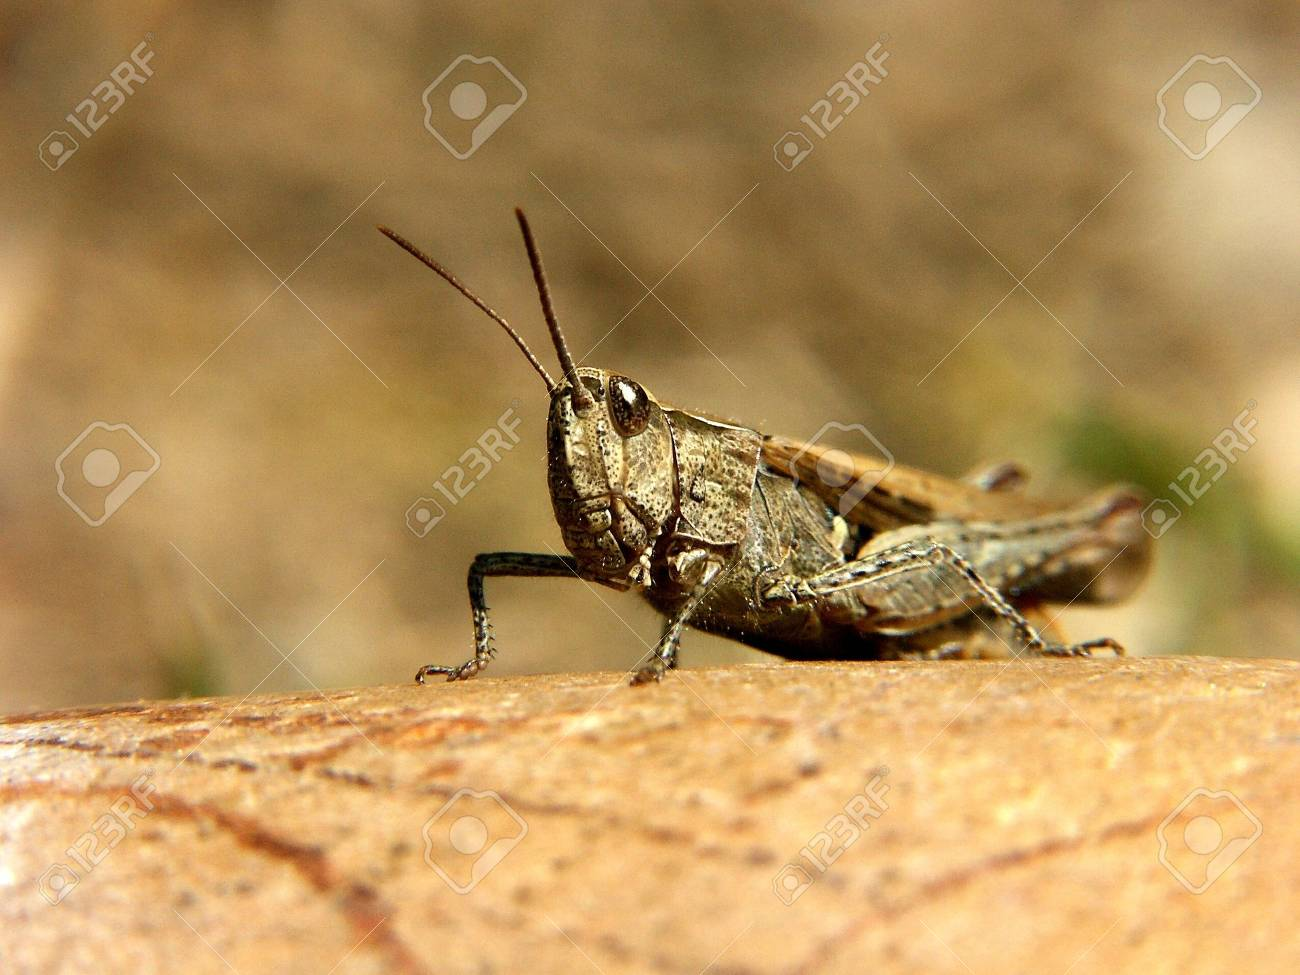 Grass-hopper on a rock in the grass Stock Photo - 6195060